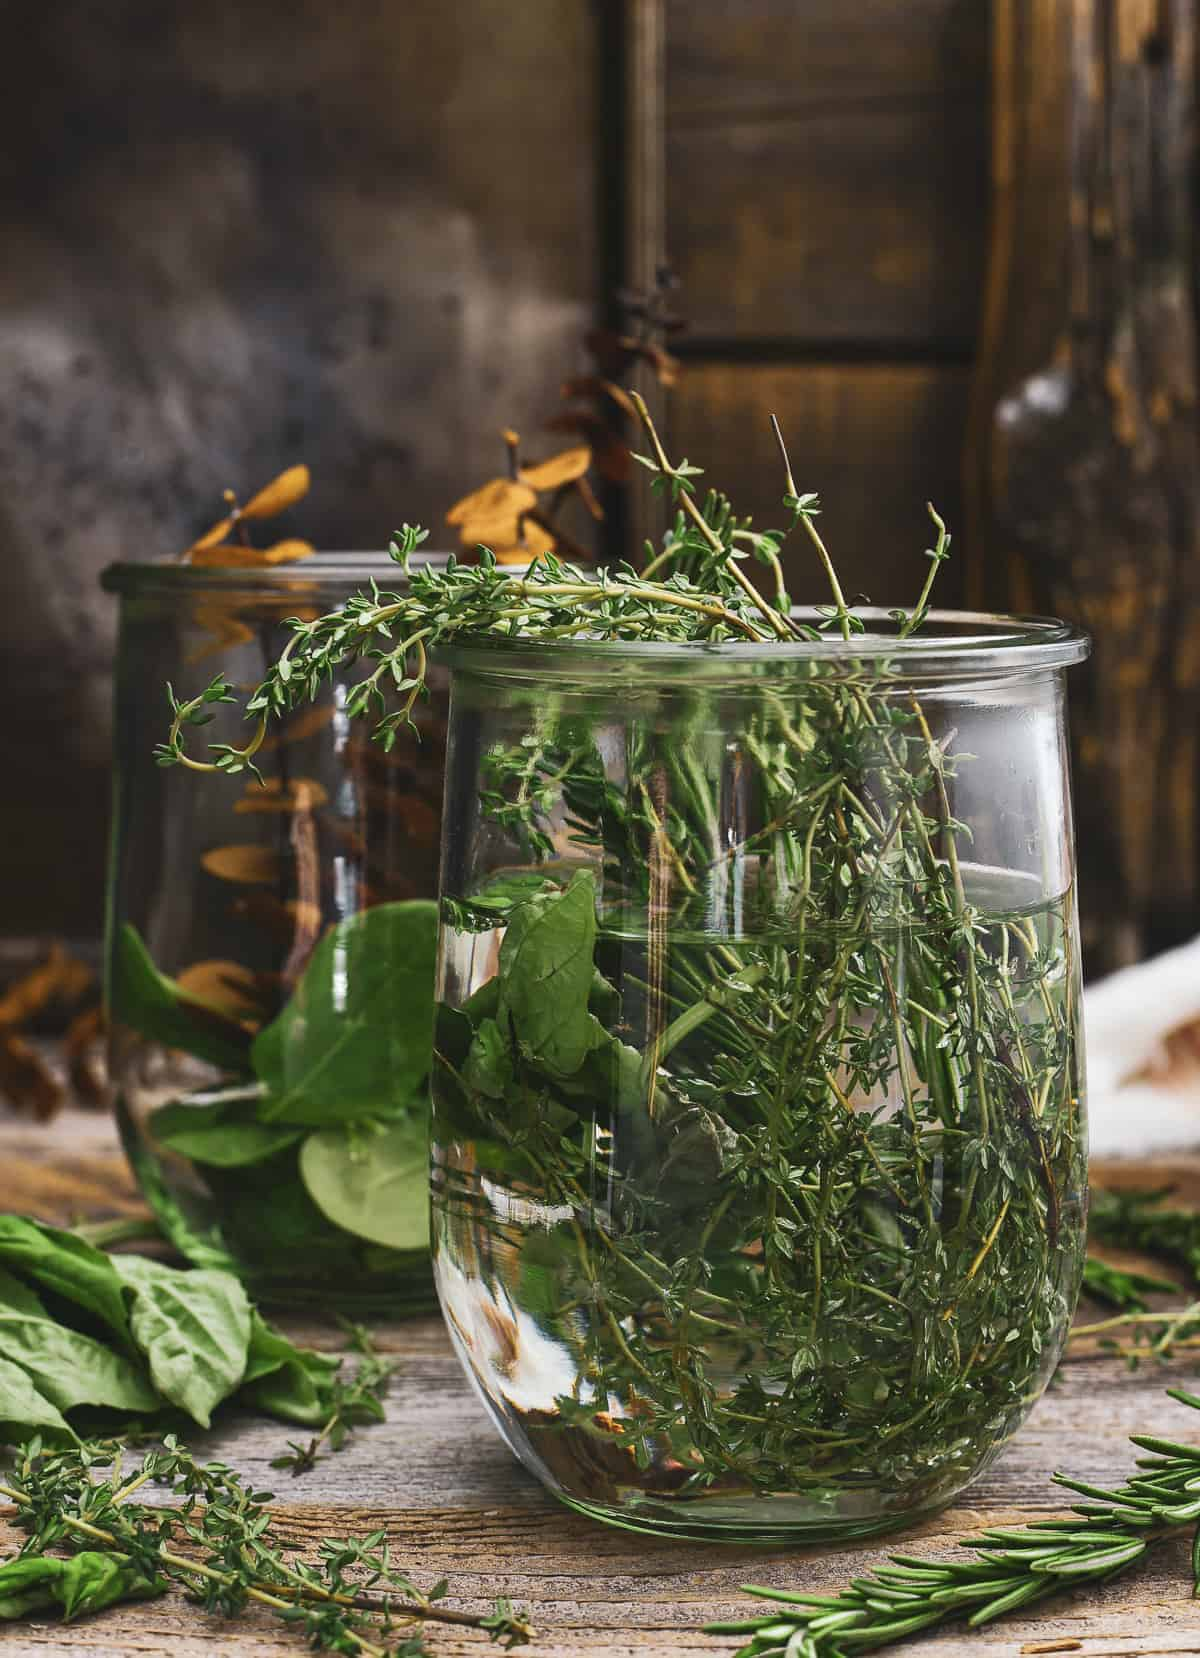 Herbs and water in glass jars.